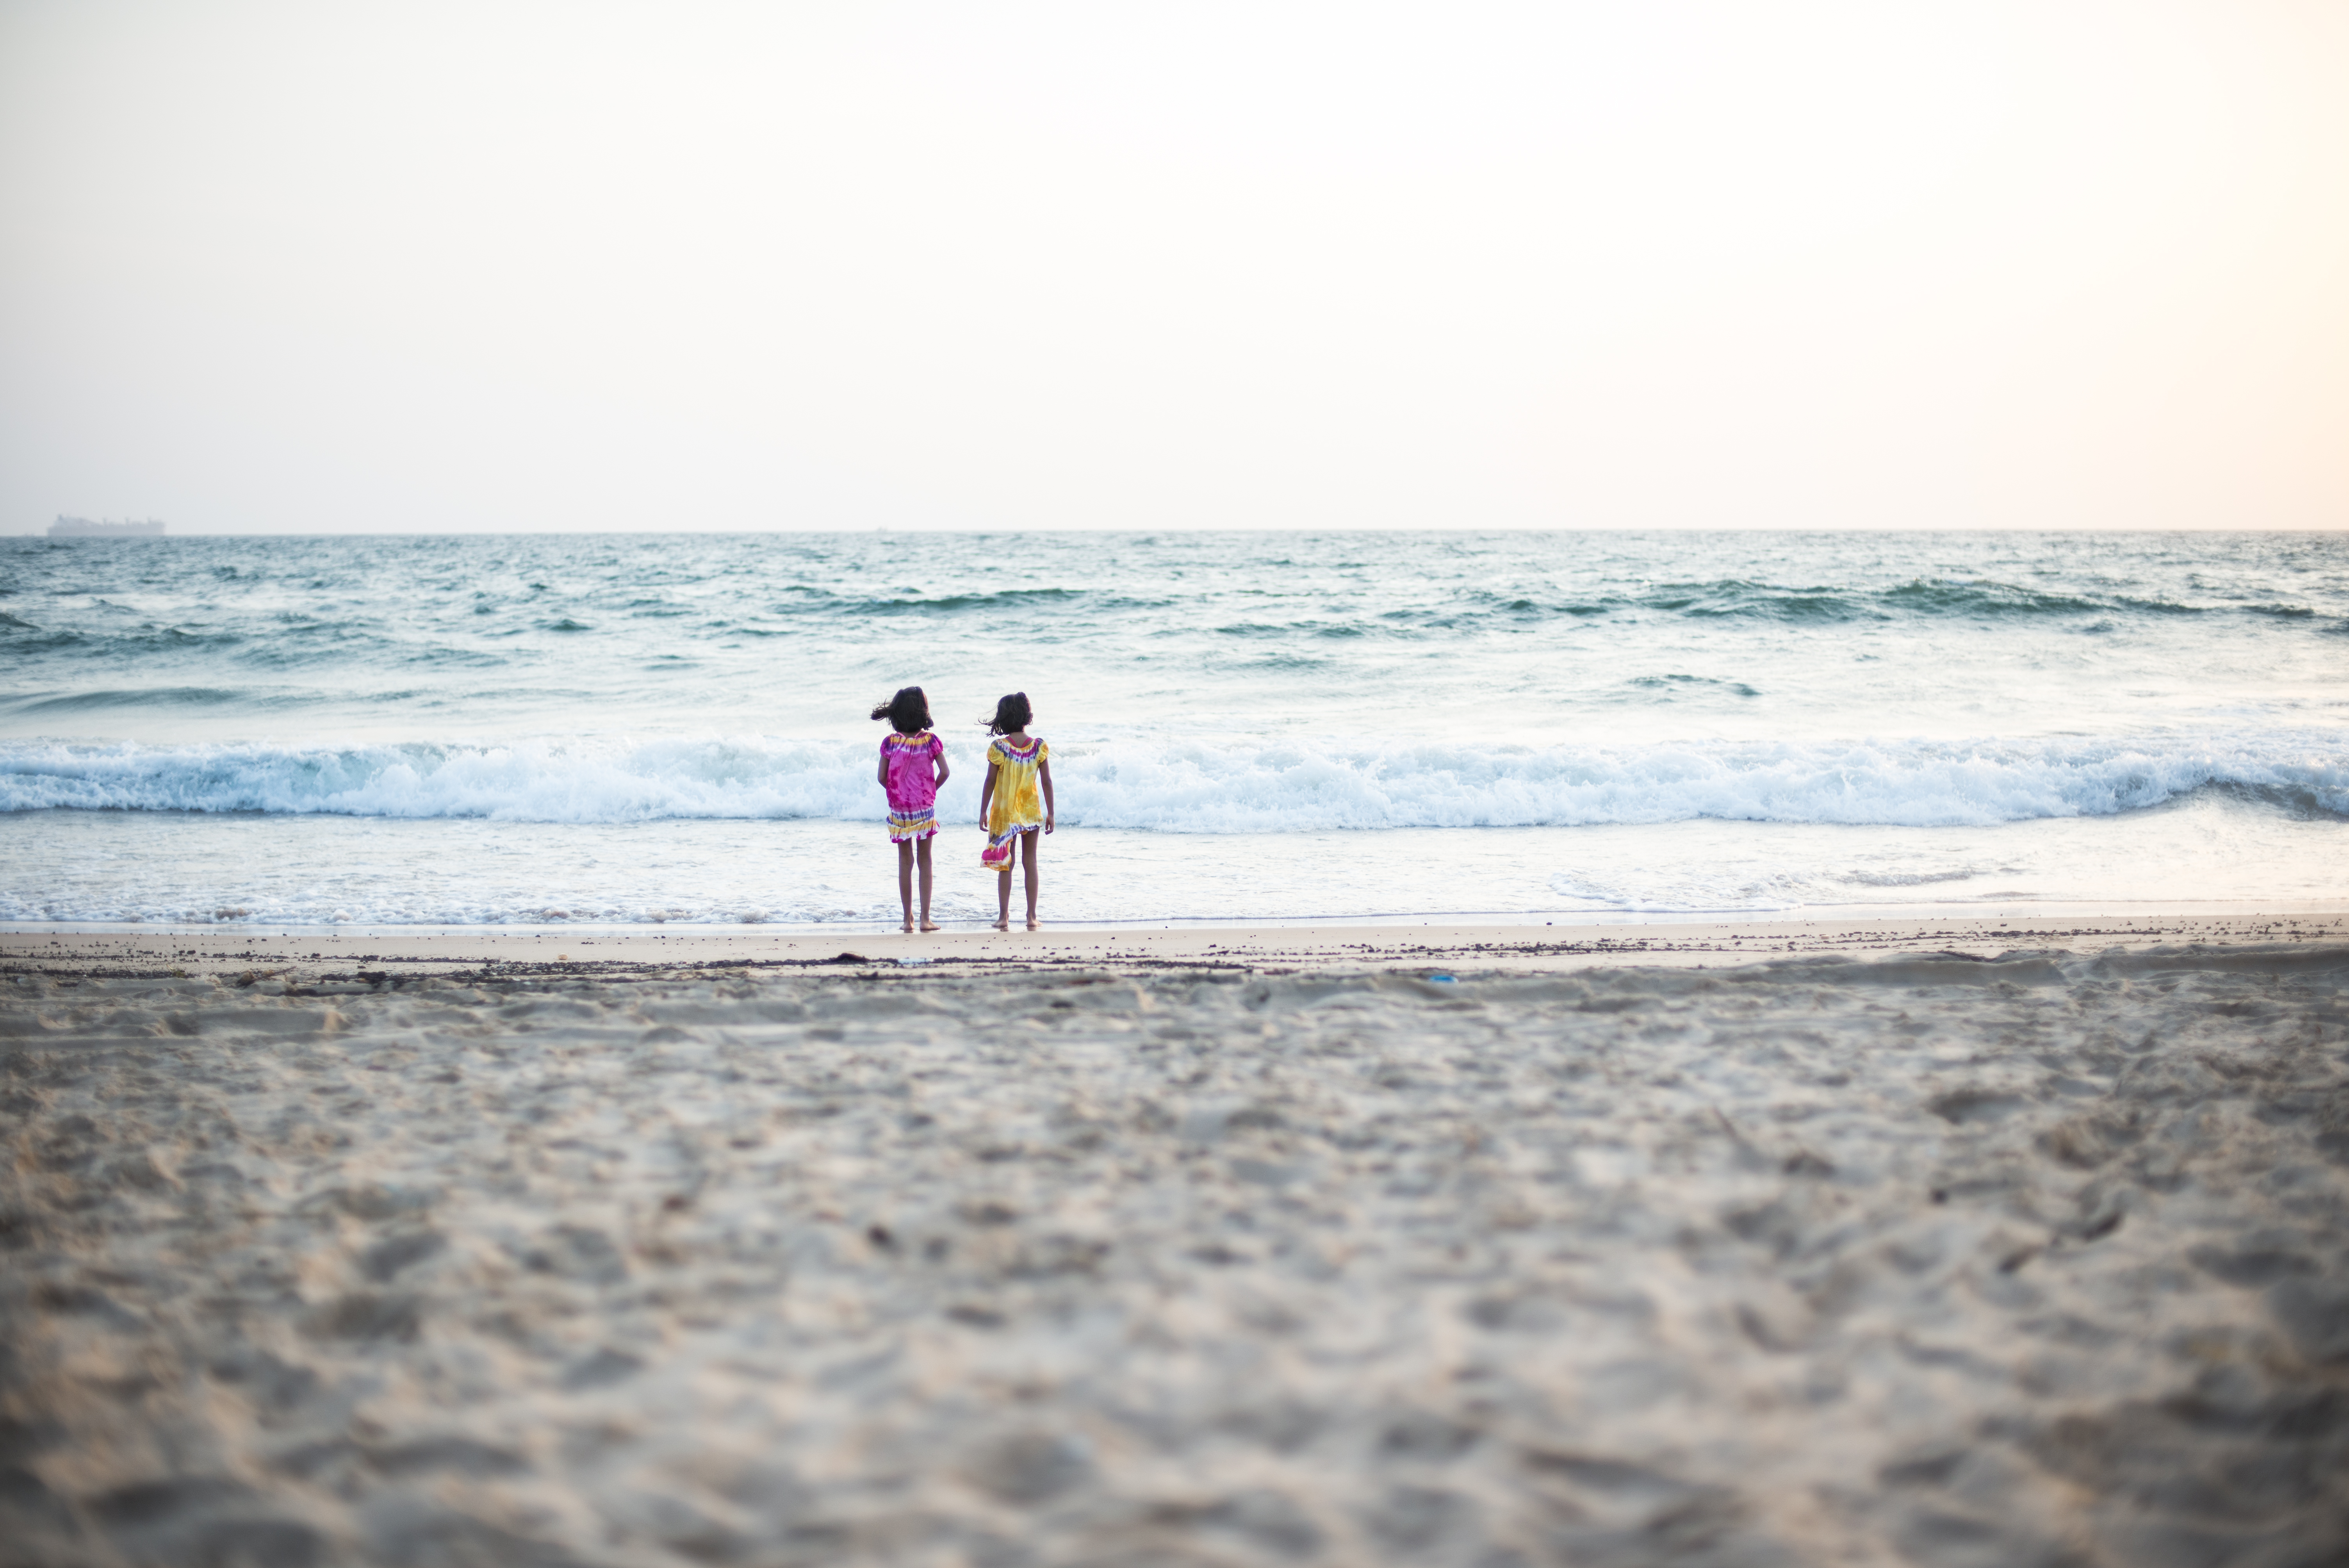 Girls on the beach in Goa wallpapers and images   wallpapers 6016x4016